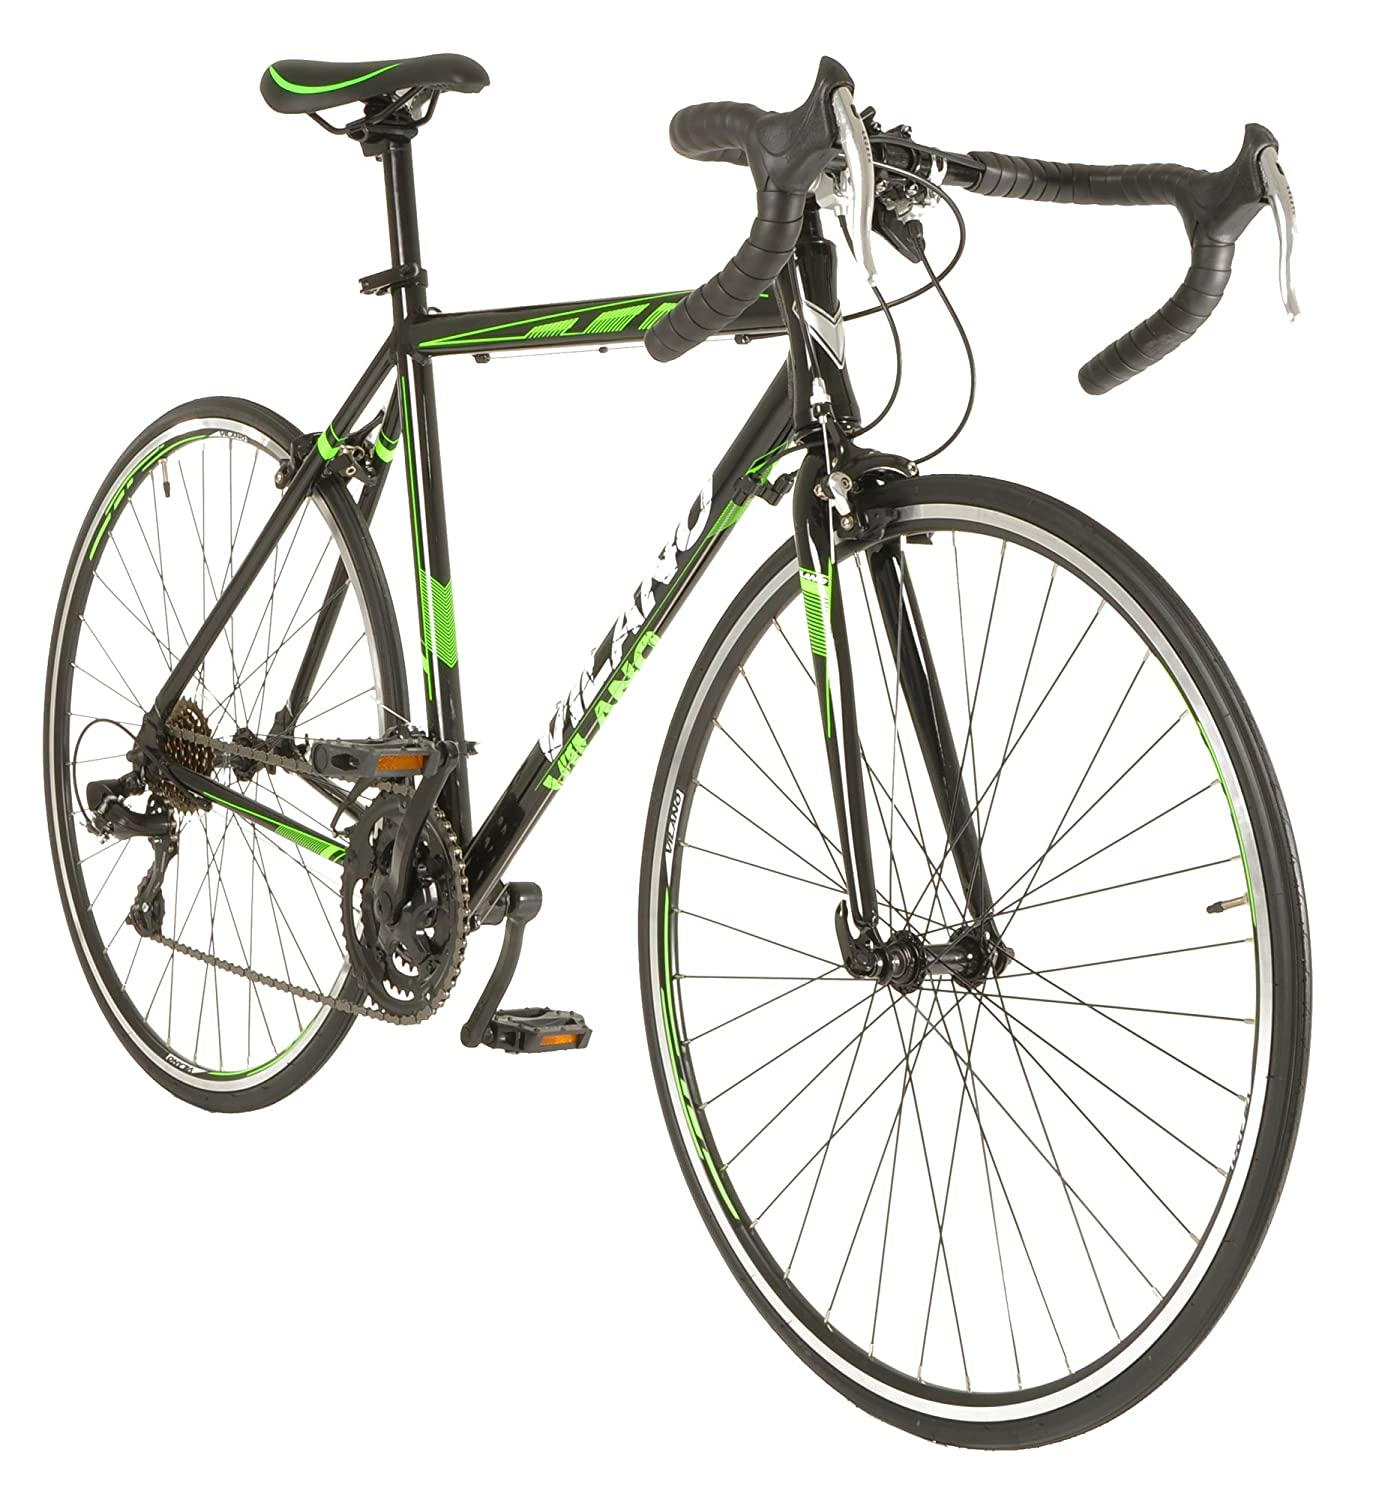 Vilano R2 Commuter Aluminum Road Bike Shimano 21-speed 700c